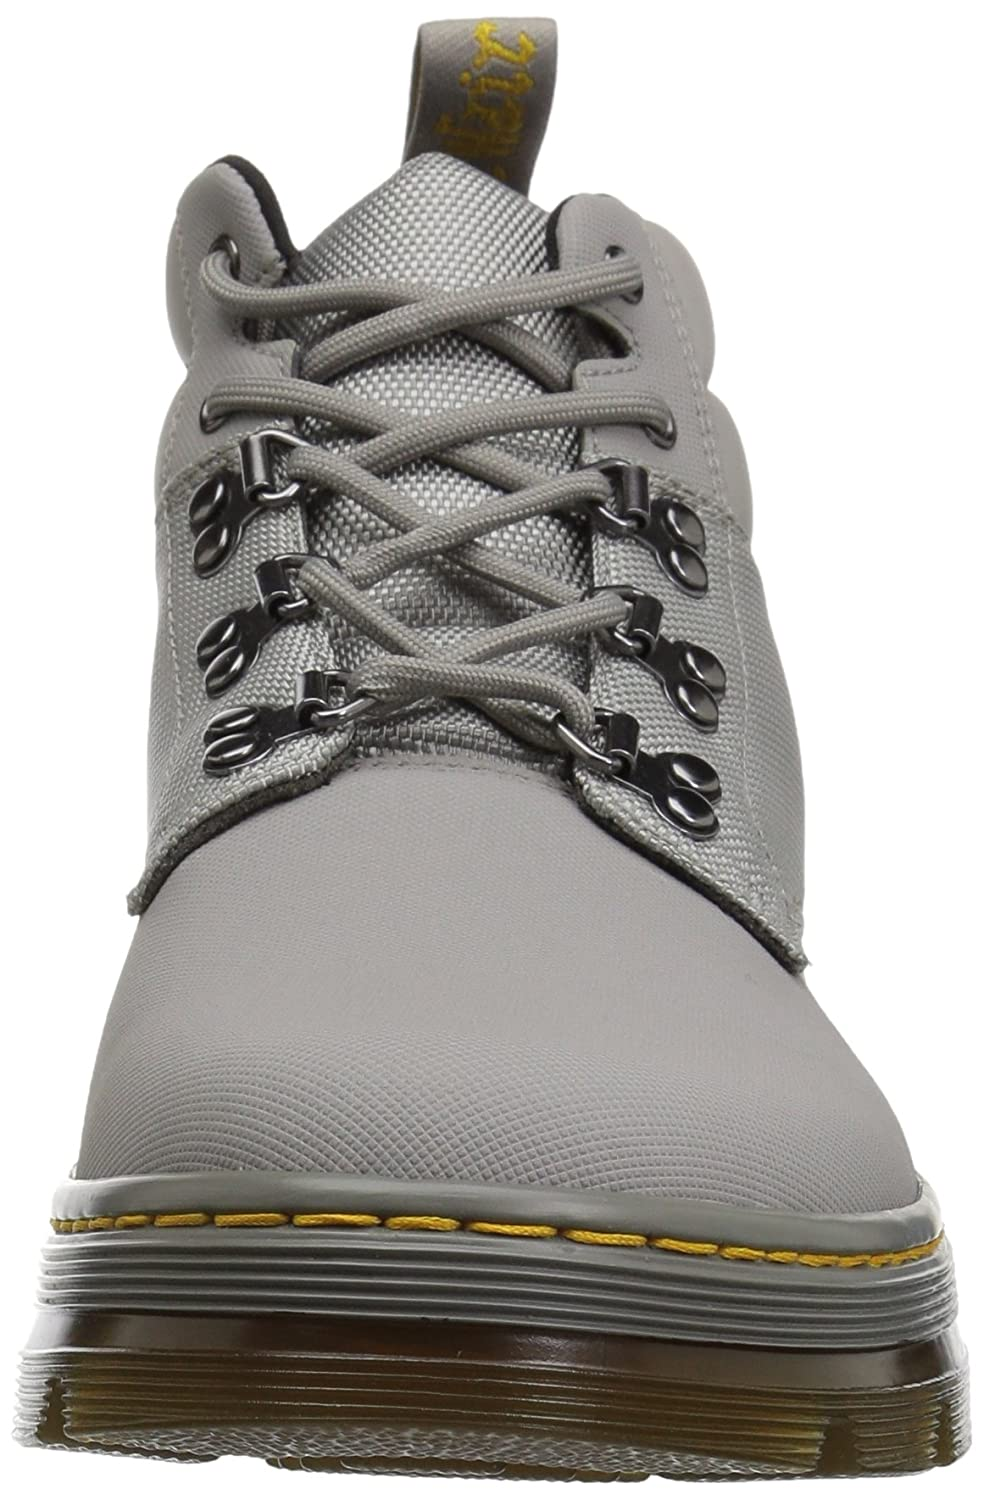 Dr. Martens Rakim Fashion Boot B0721F5QQK 4 Medium UK (US Women's 6 US)|Grey